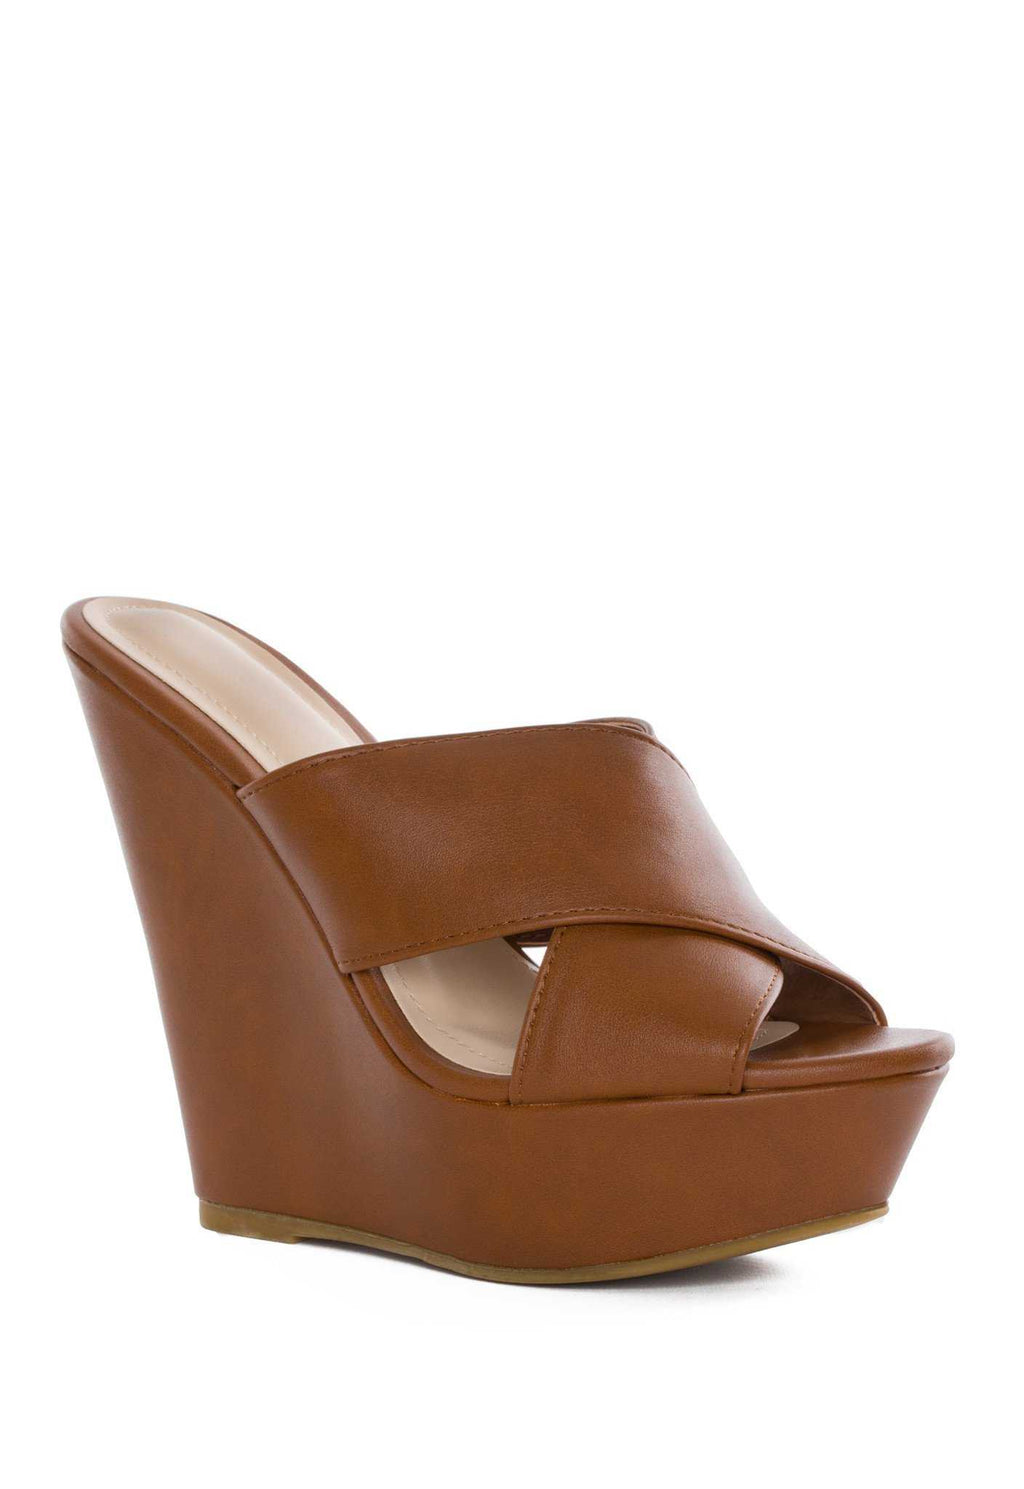 Shoes - Kriss Wedge - Tan